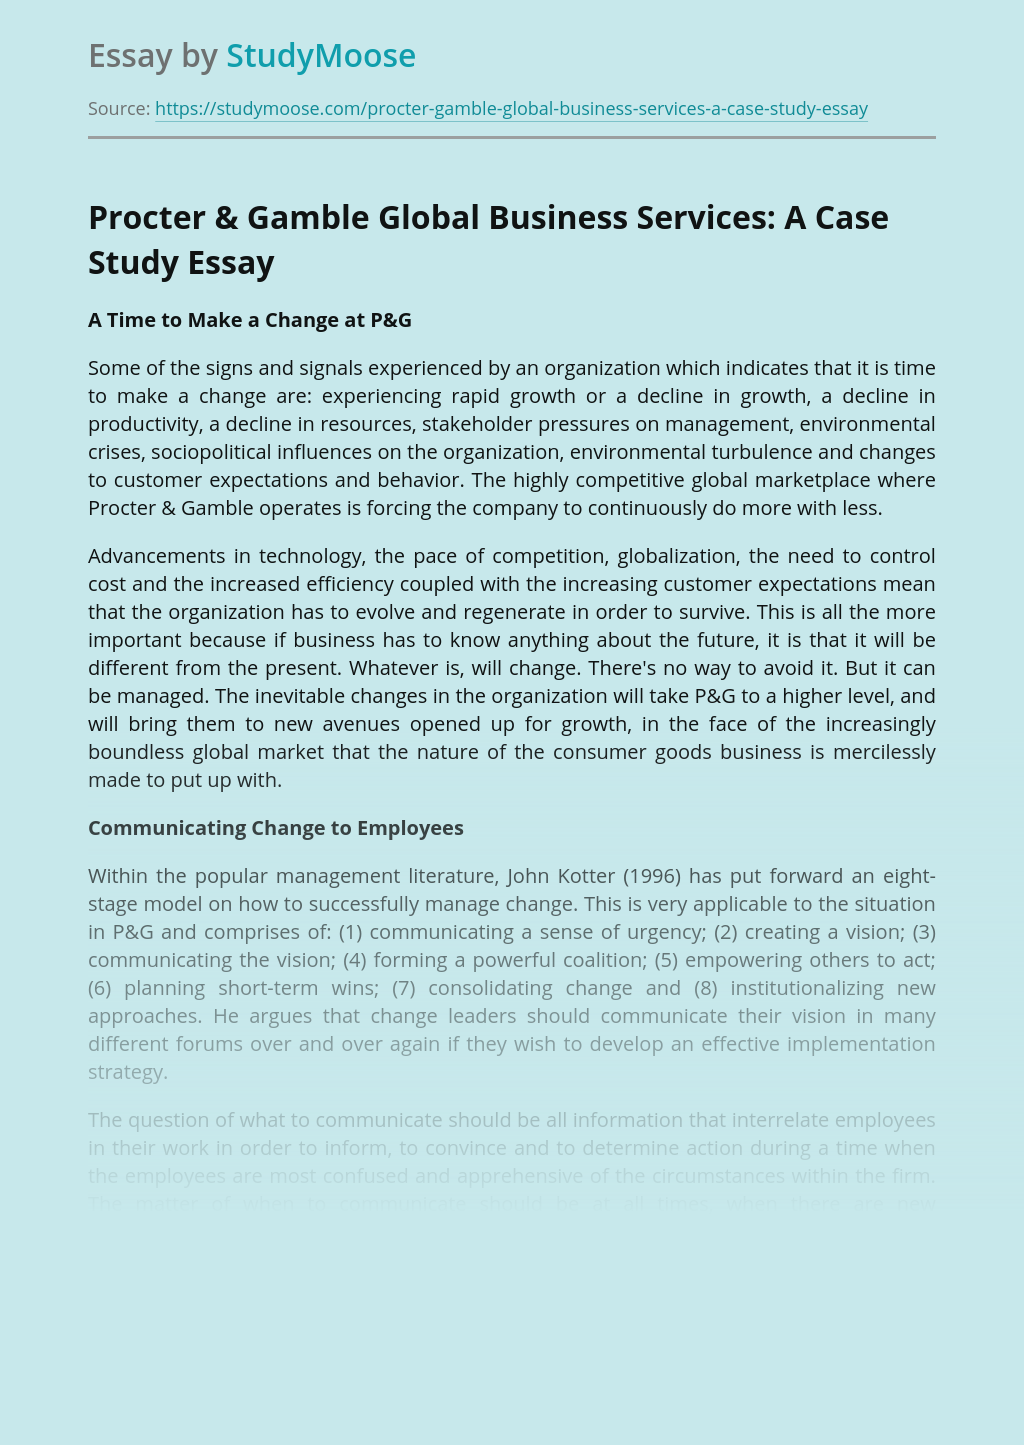 Procter & Gamble Global Business Services: A Case Study